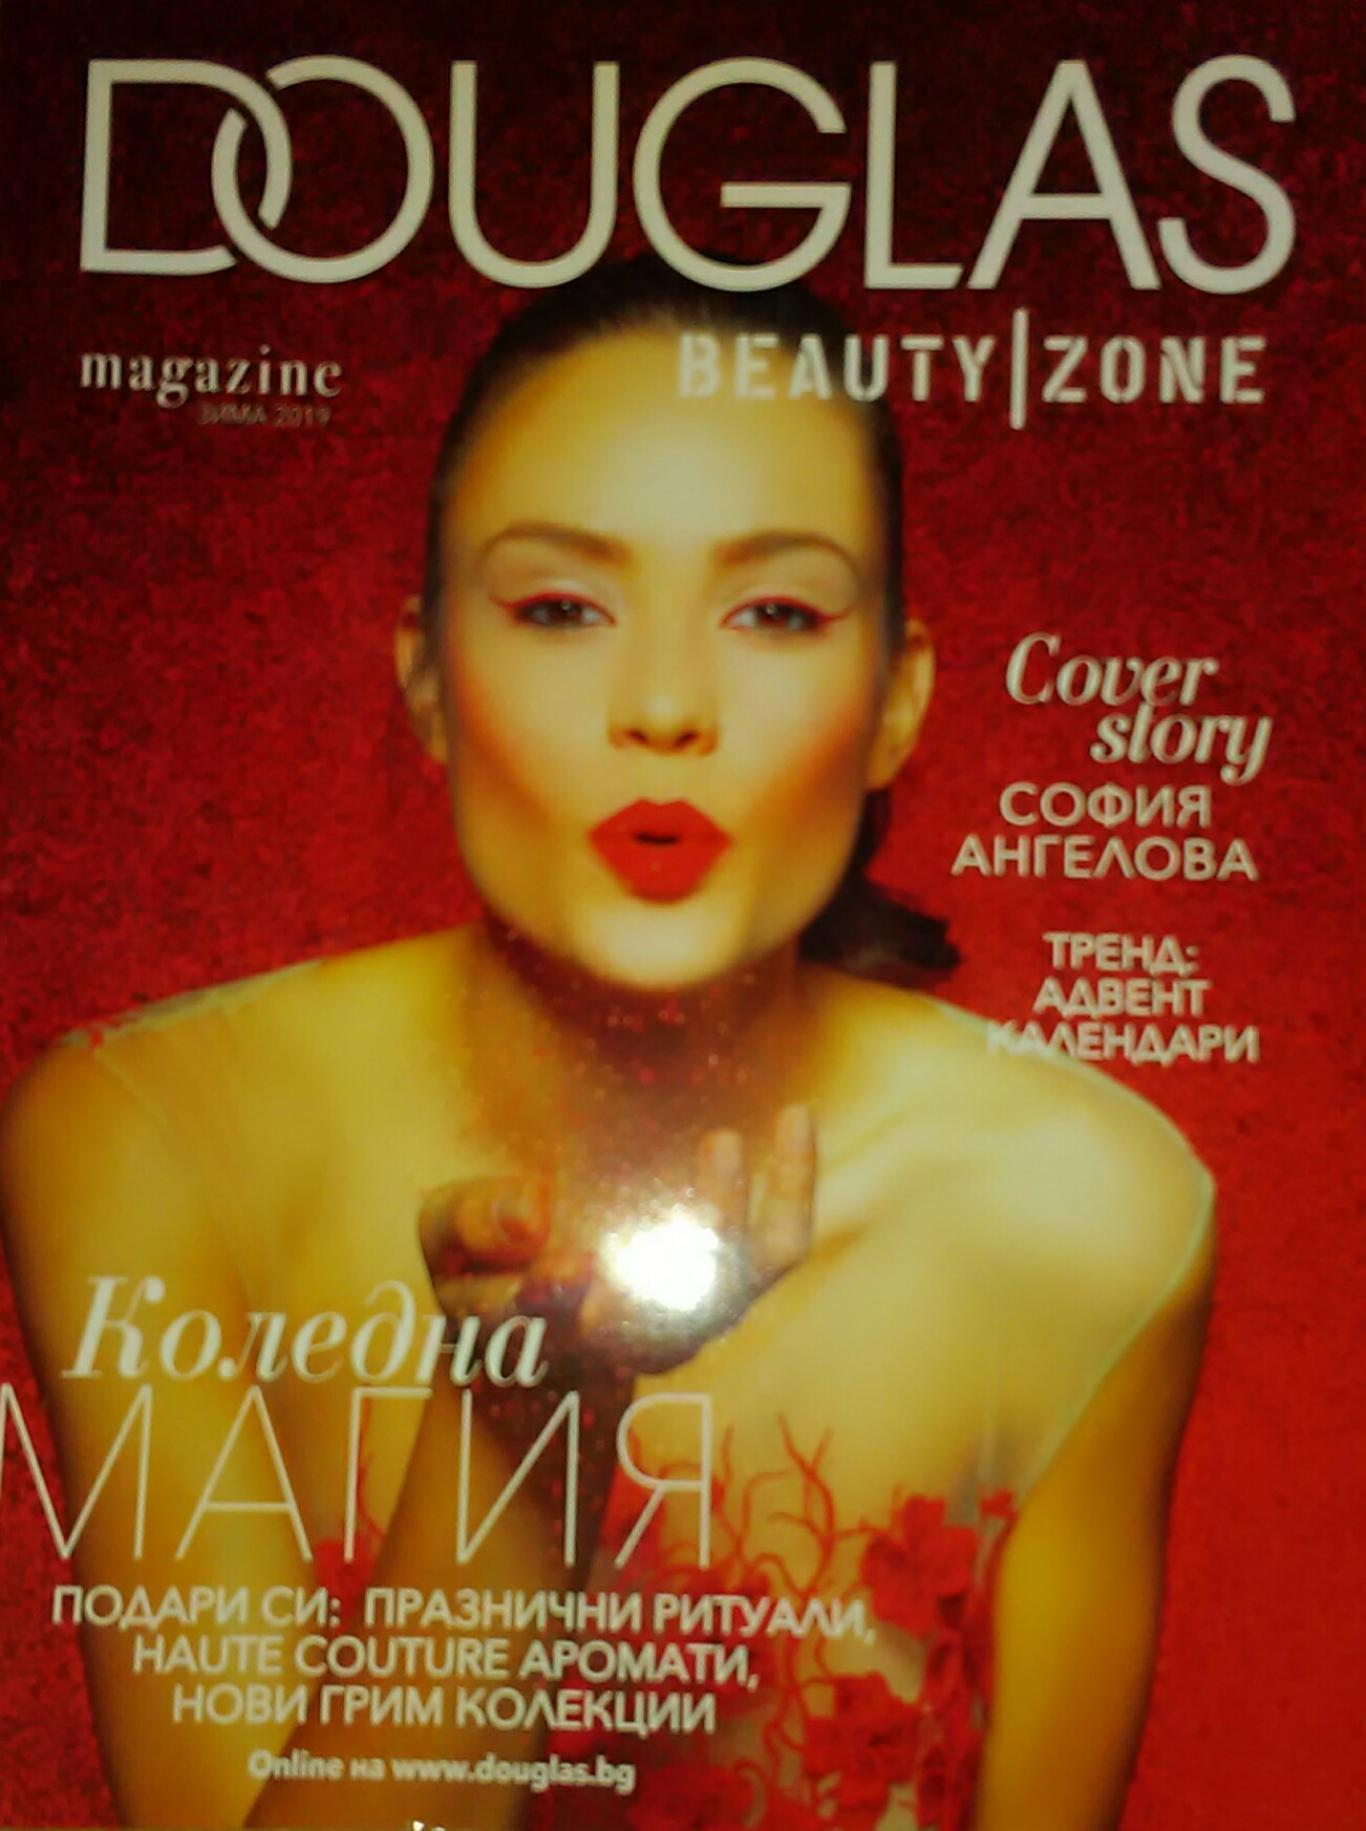 DOUGLAS & BEAUTY|ZONE, Колектив